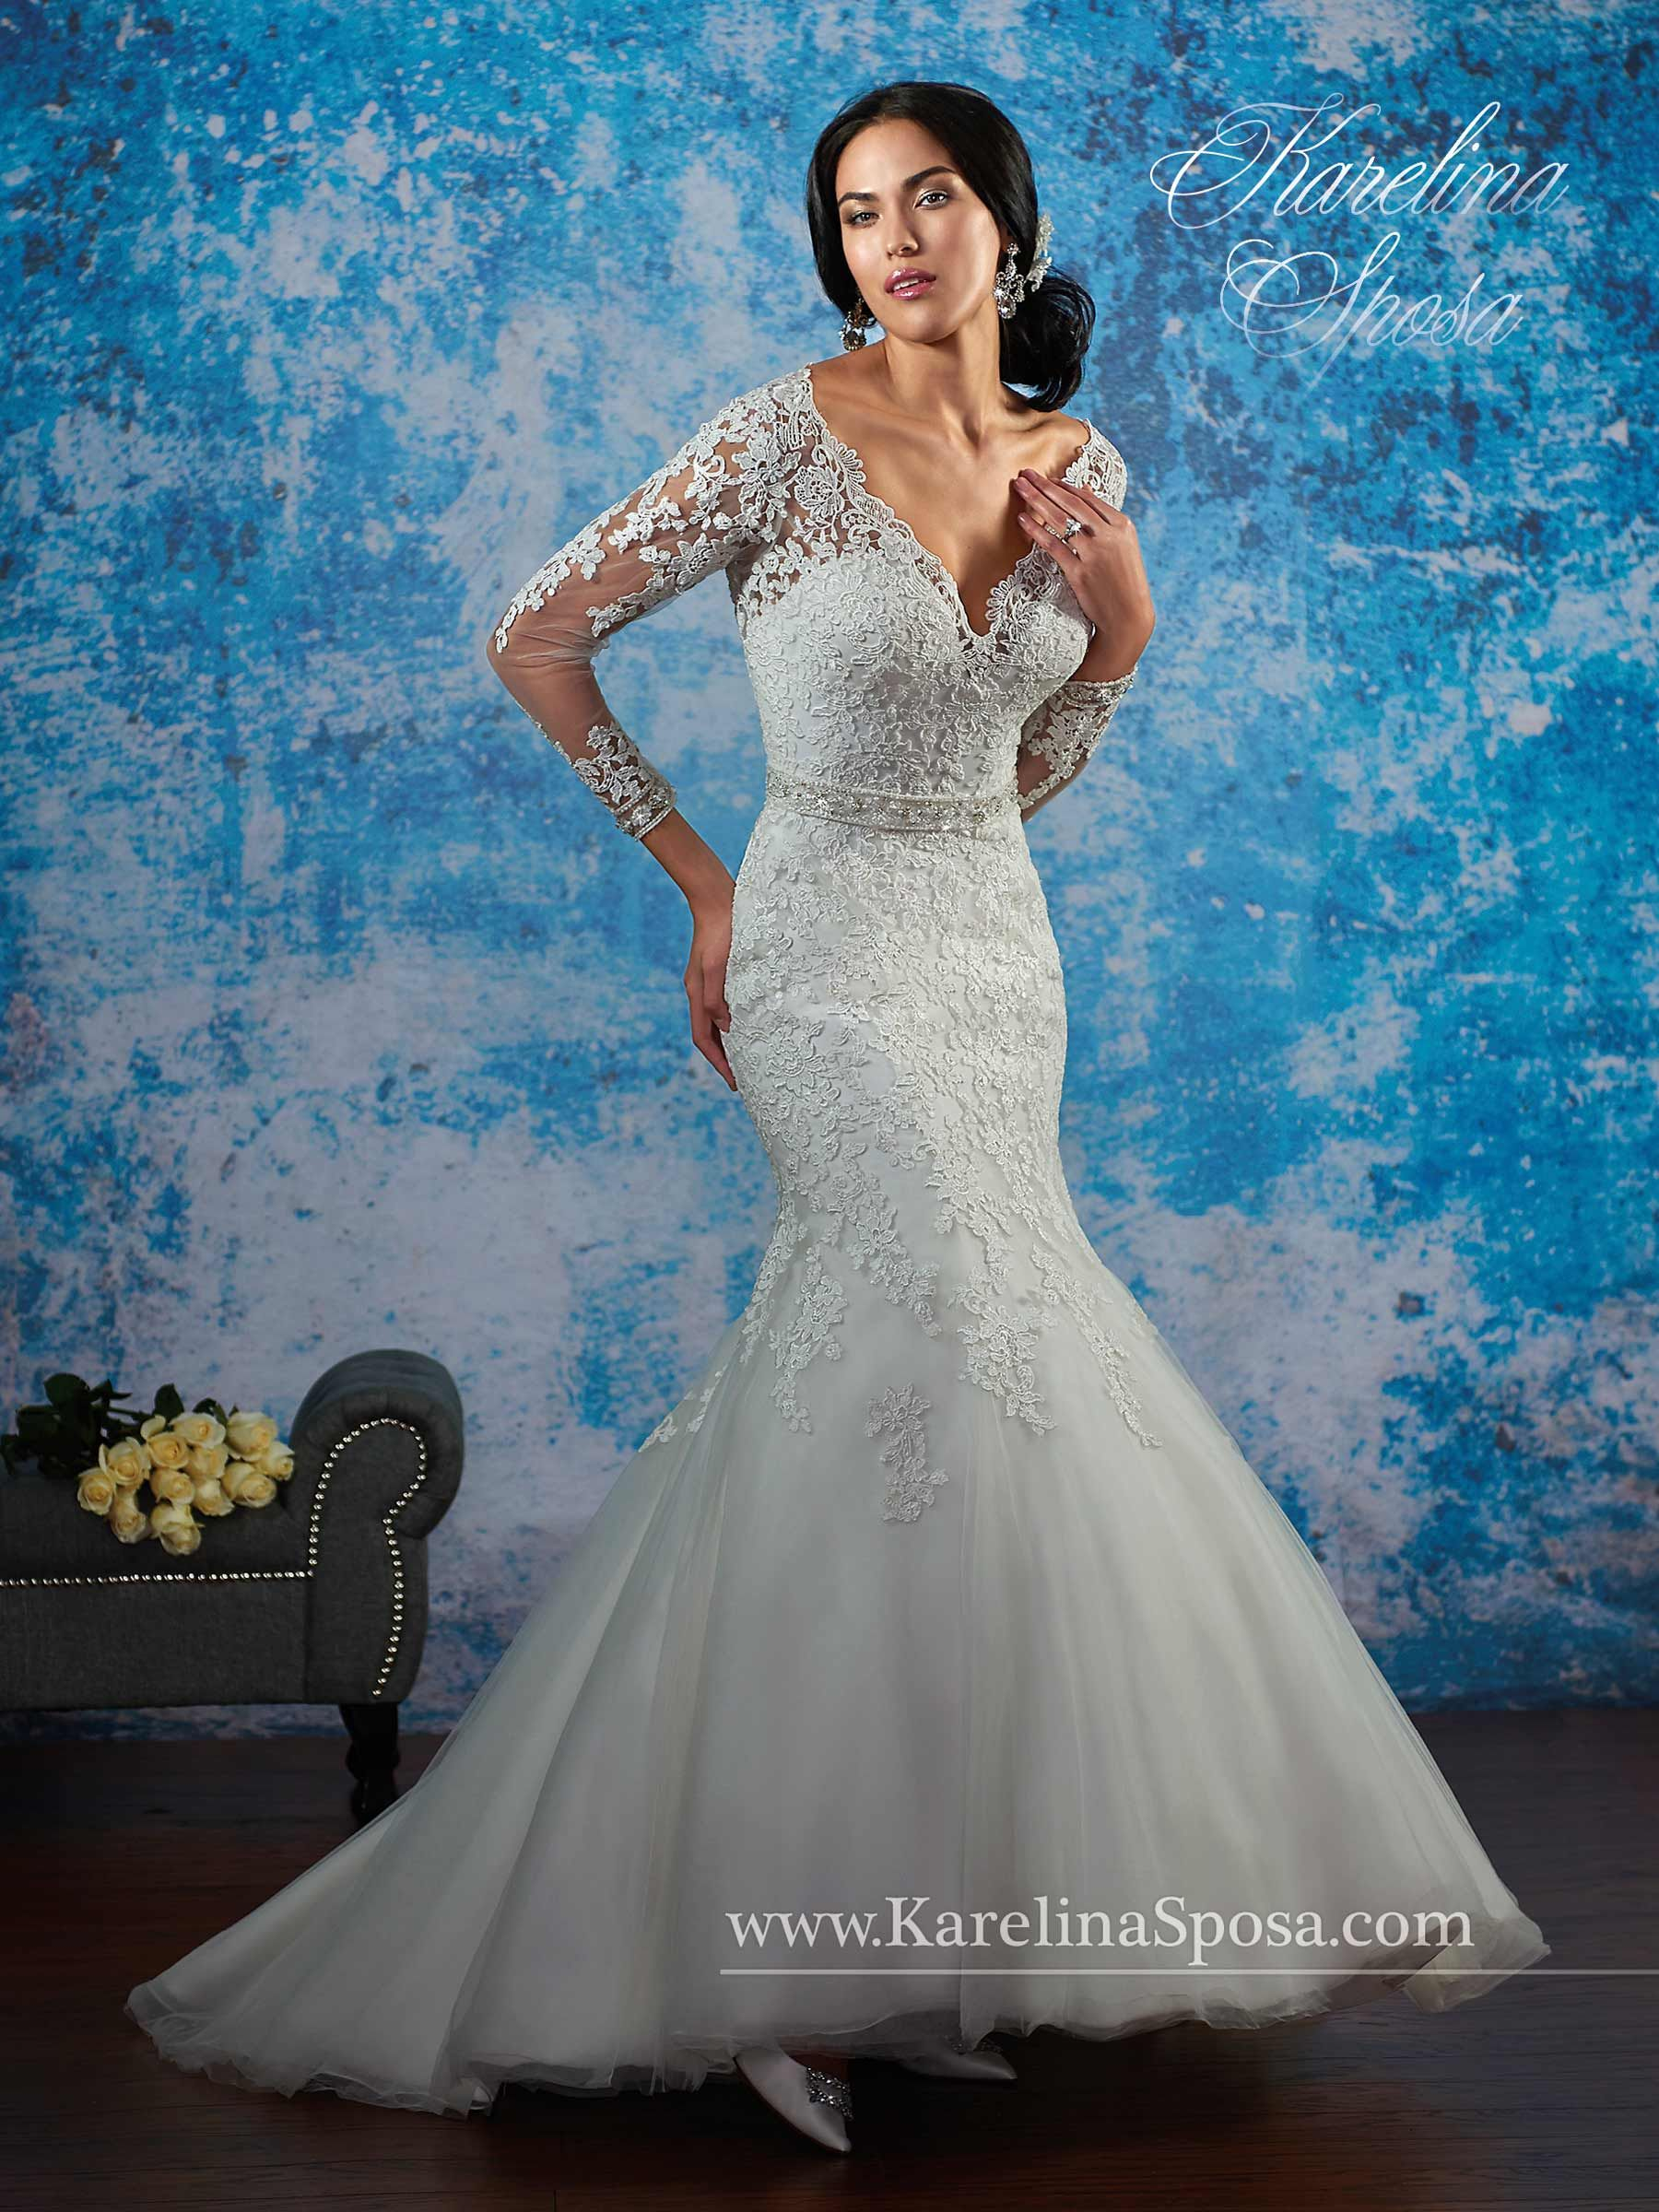 Bridal Gowns - Karelina Sposa - Style: C8080 by Mary\'s Bridal Gowns ...